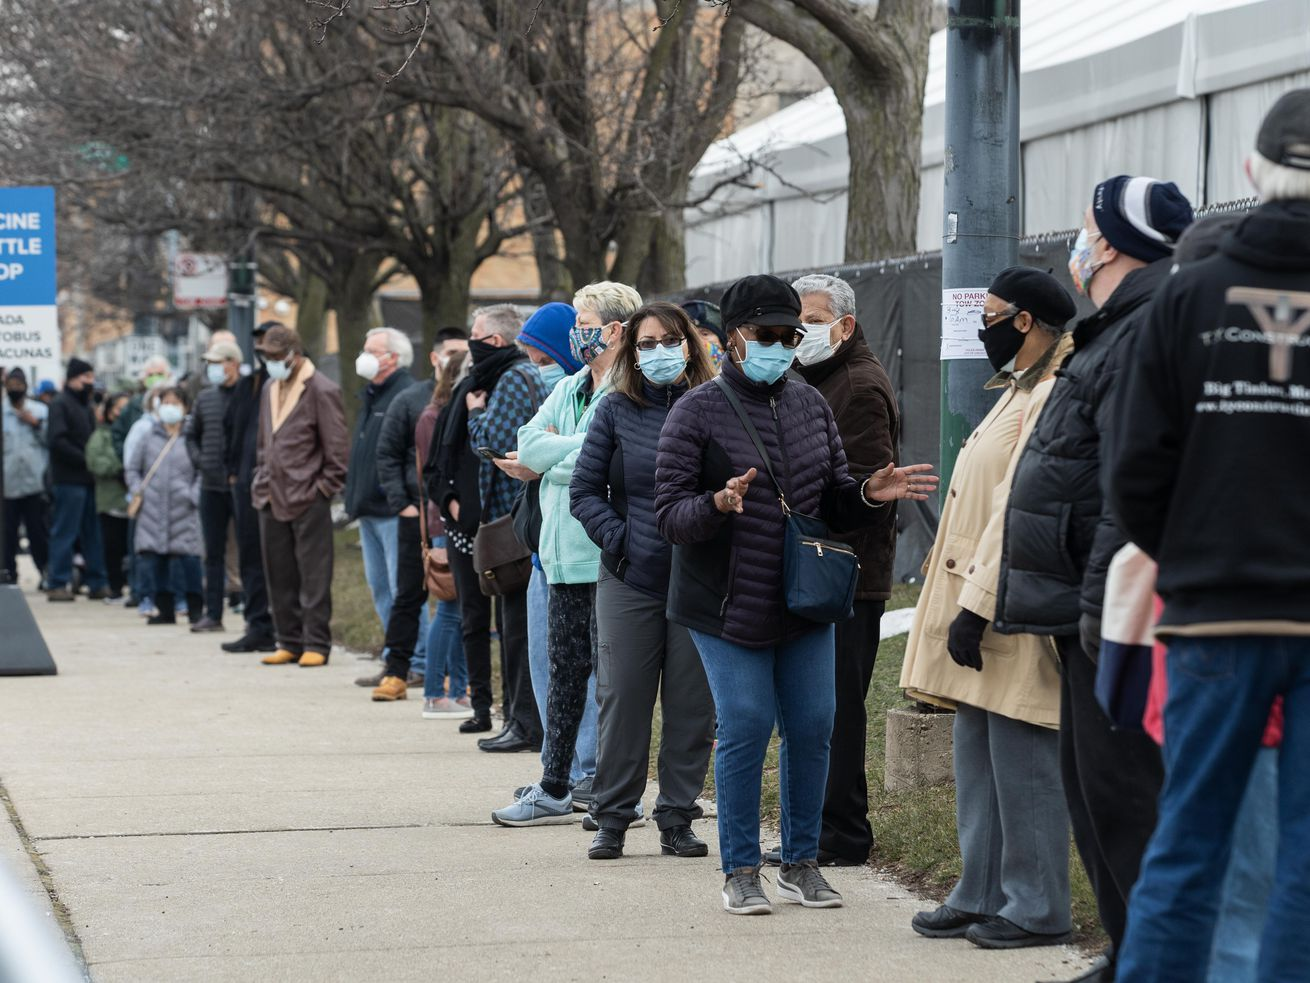 People lined up outside the COVID-19 vaccination site outside the United Center on March 9, the opening day for that mass vaccination site.